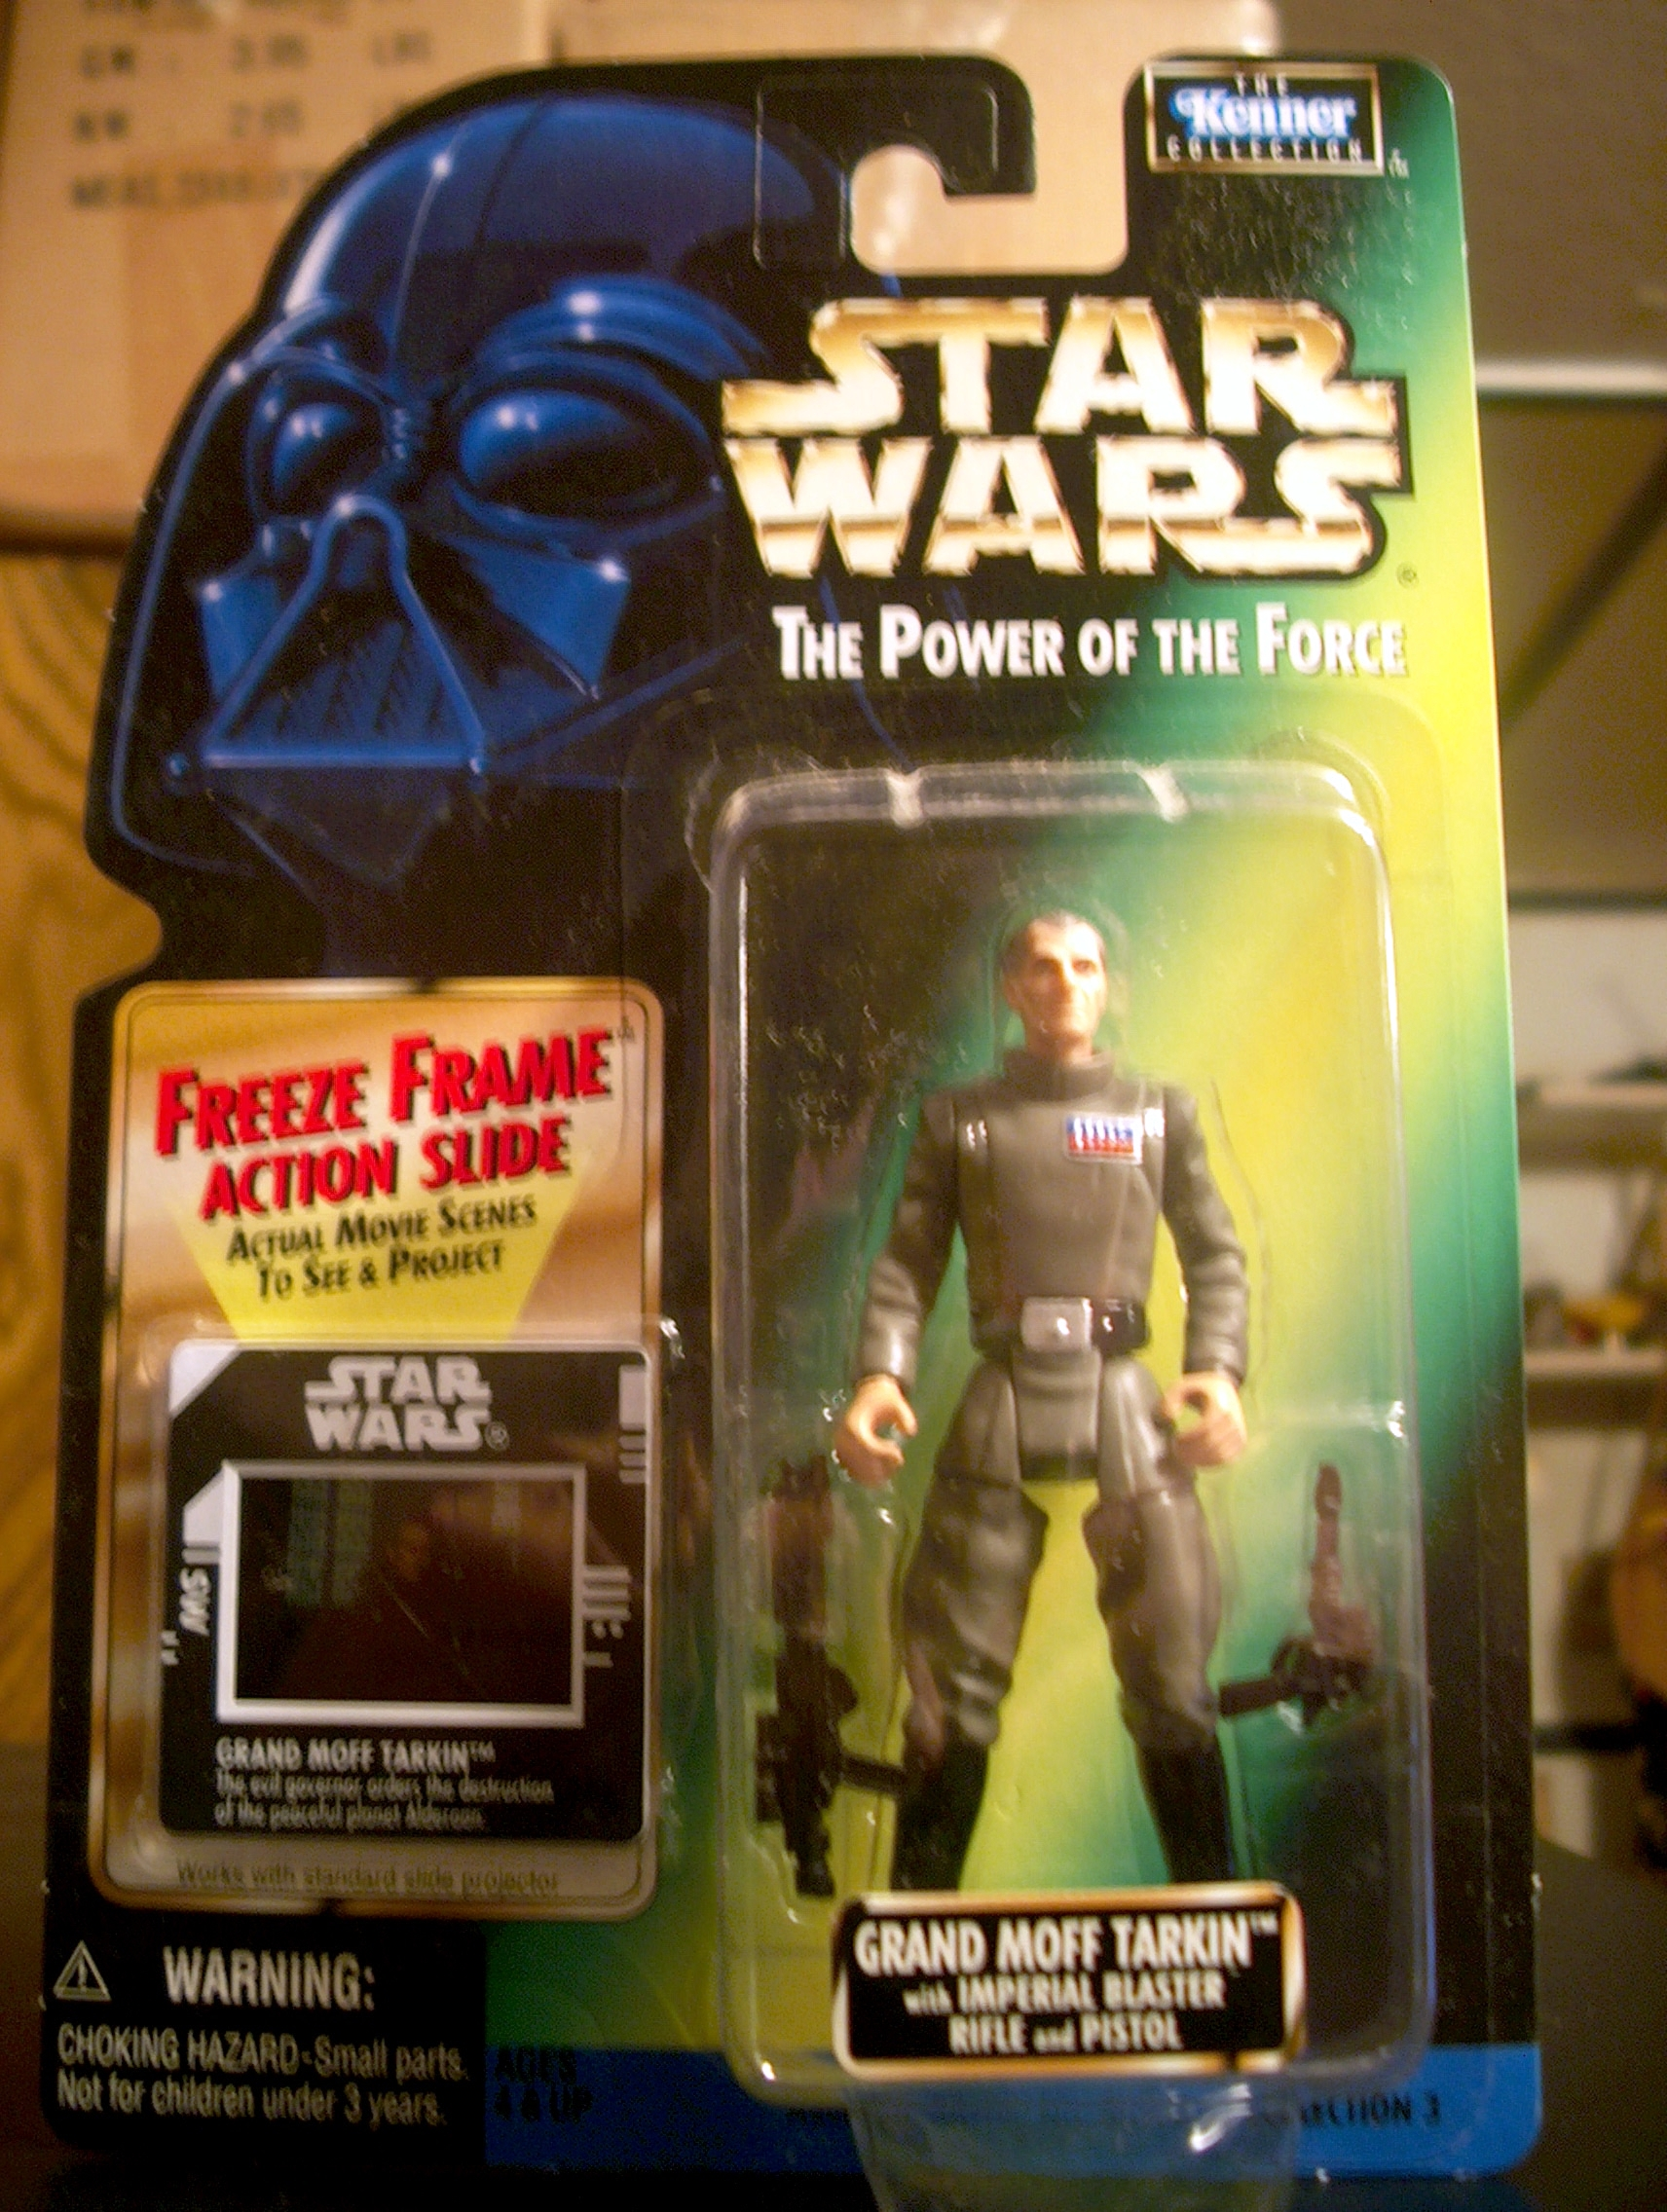 Grand Moff Tarkin with Imperial Blaster Rifle and Pistol